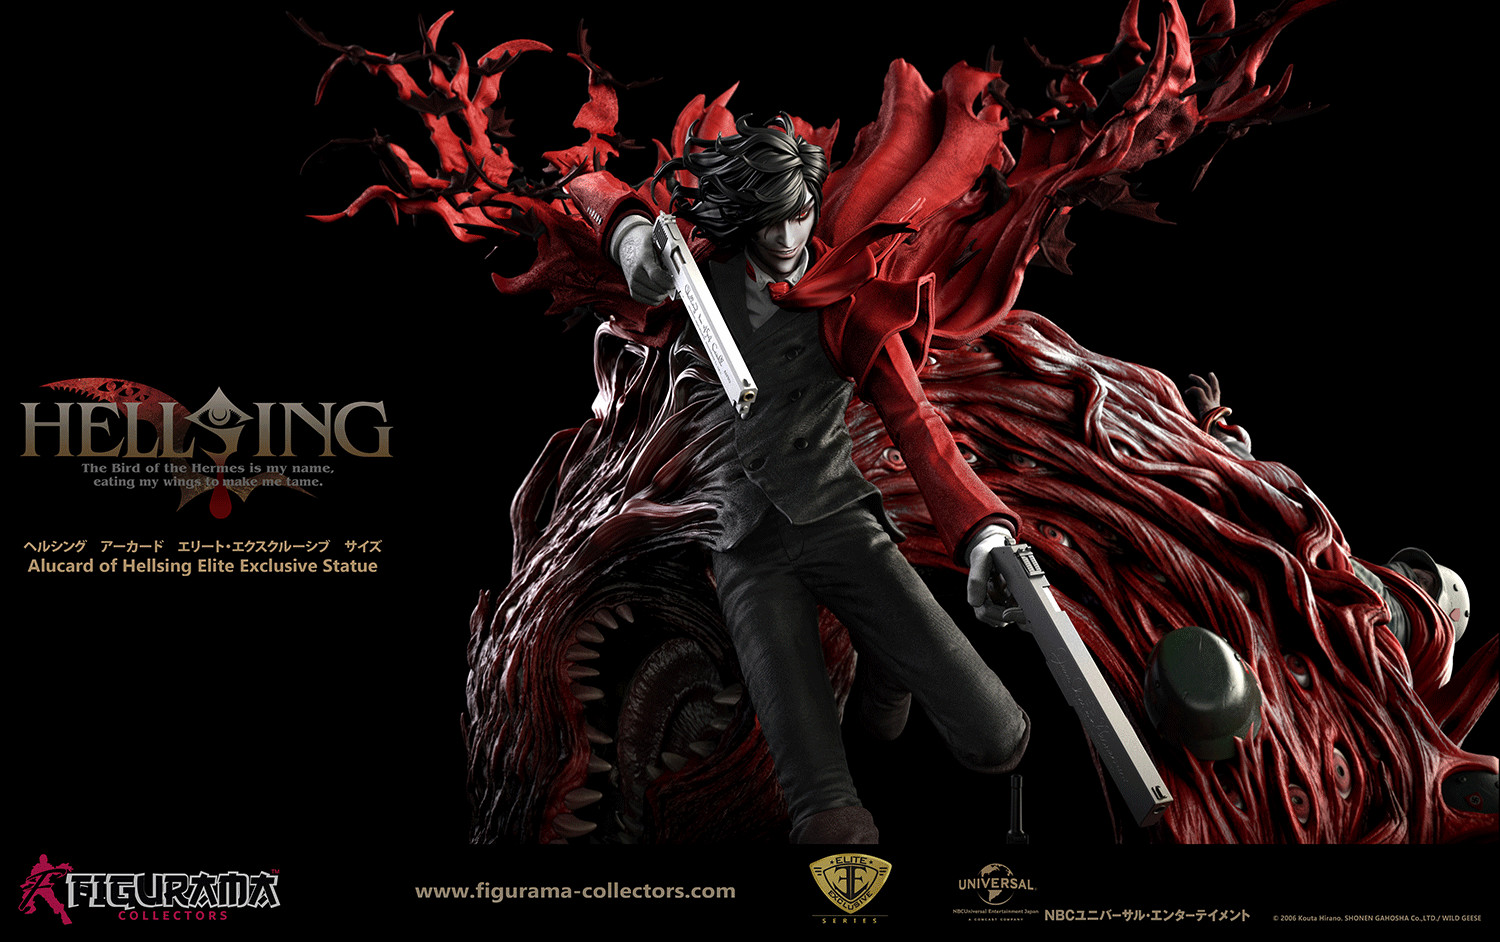 Alucard Of Hellsing Elite Exclusive Statue - Figurama Collectors